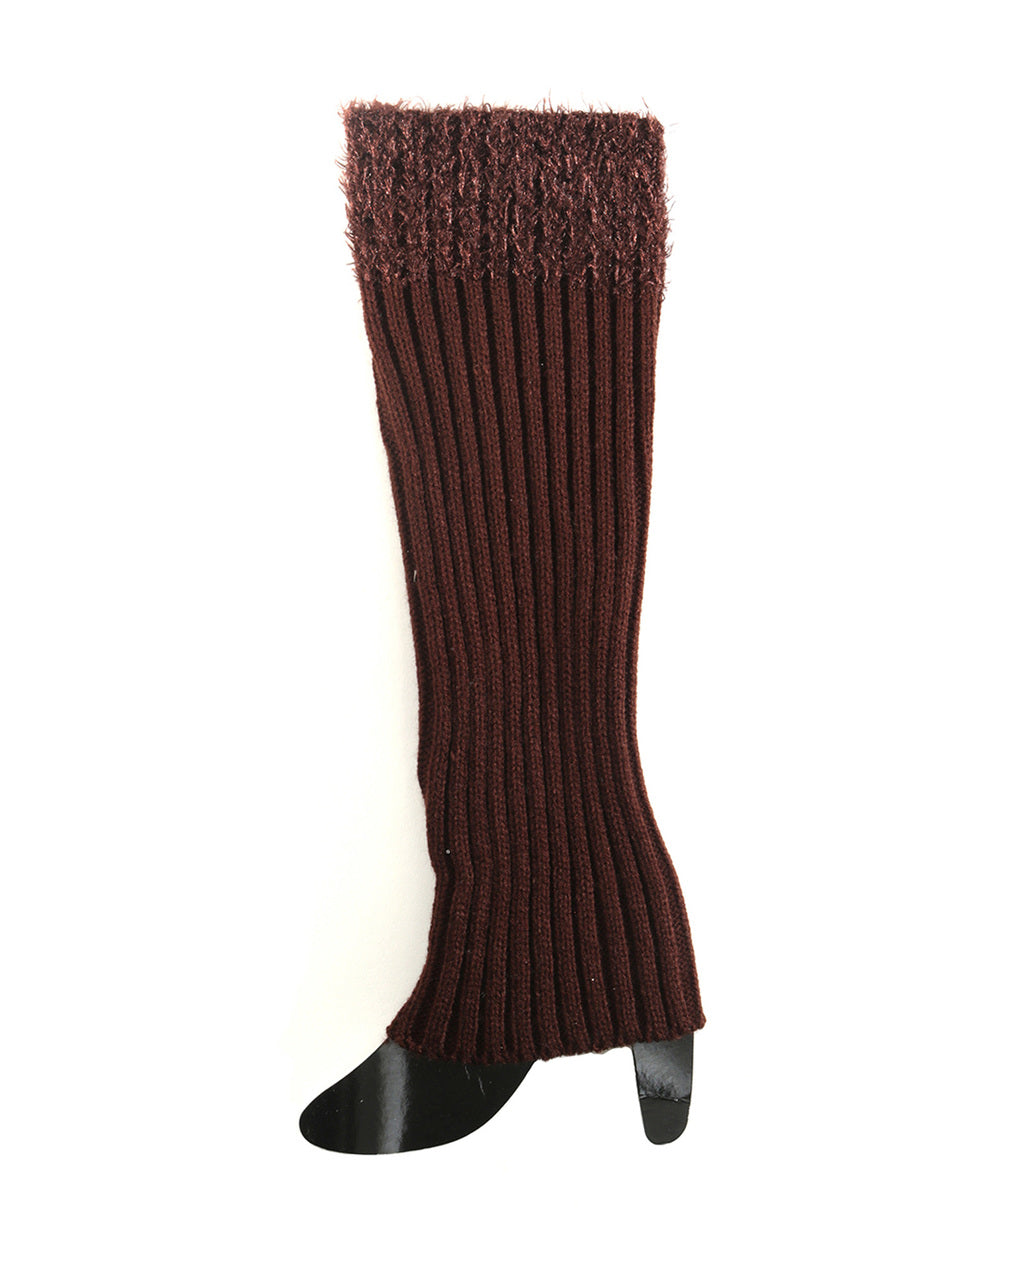 BROWN BOOT CUFFS (TALL)